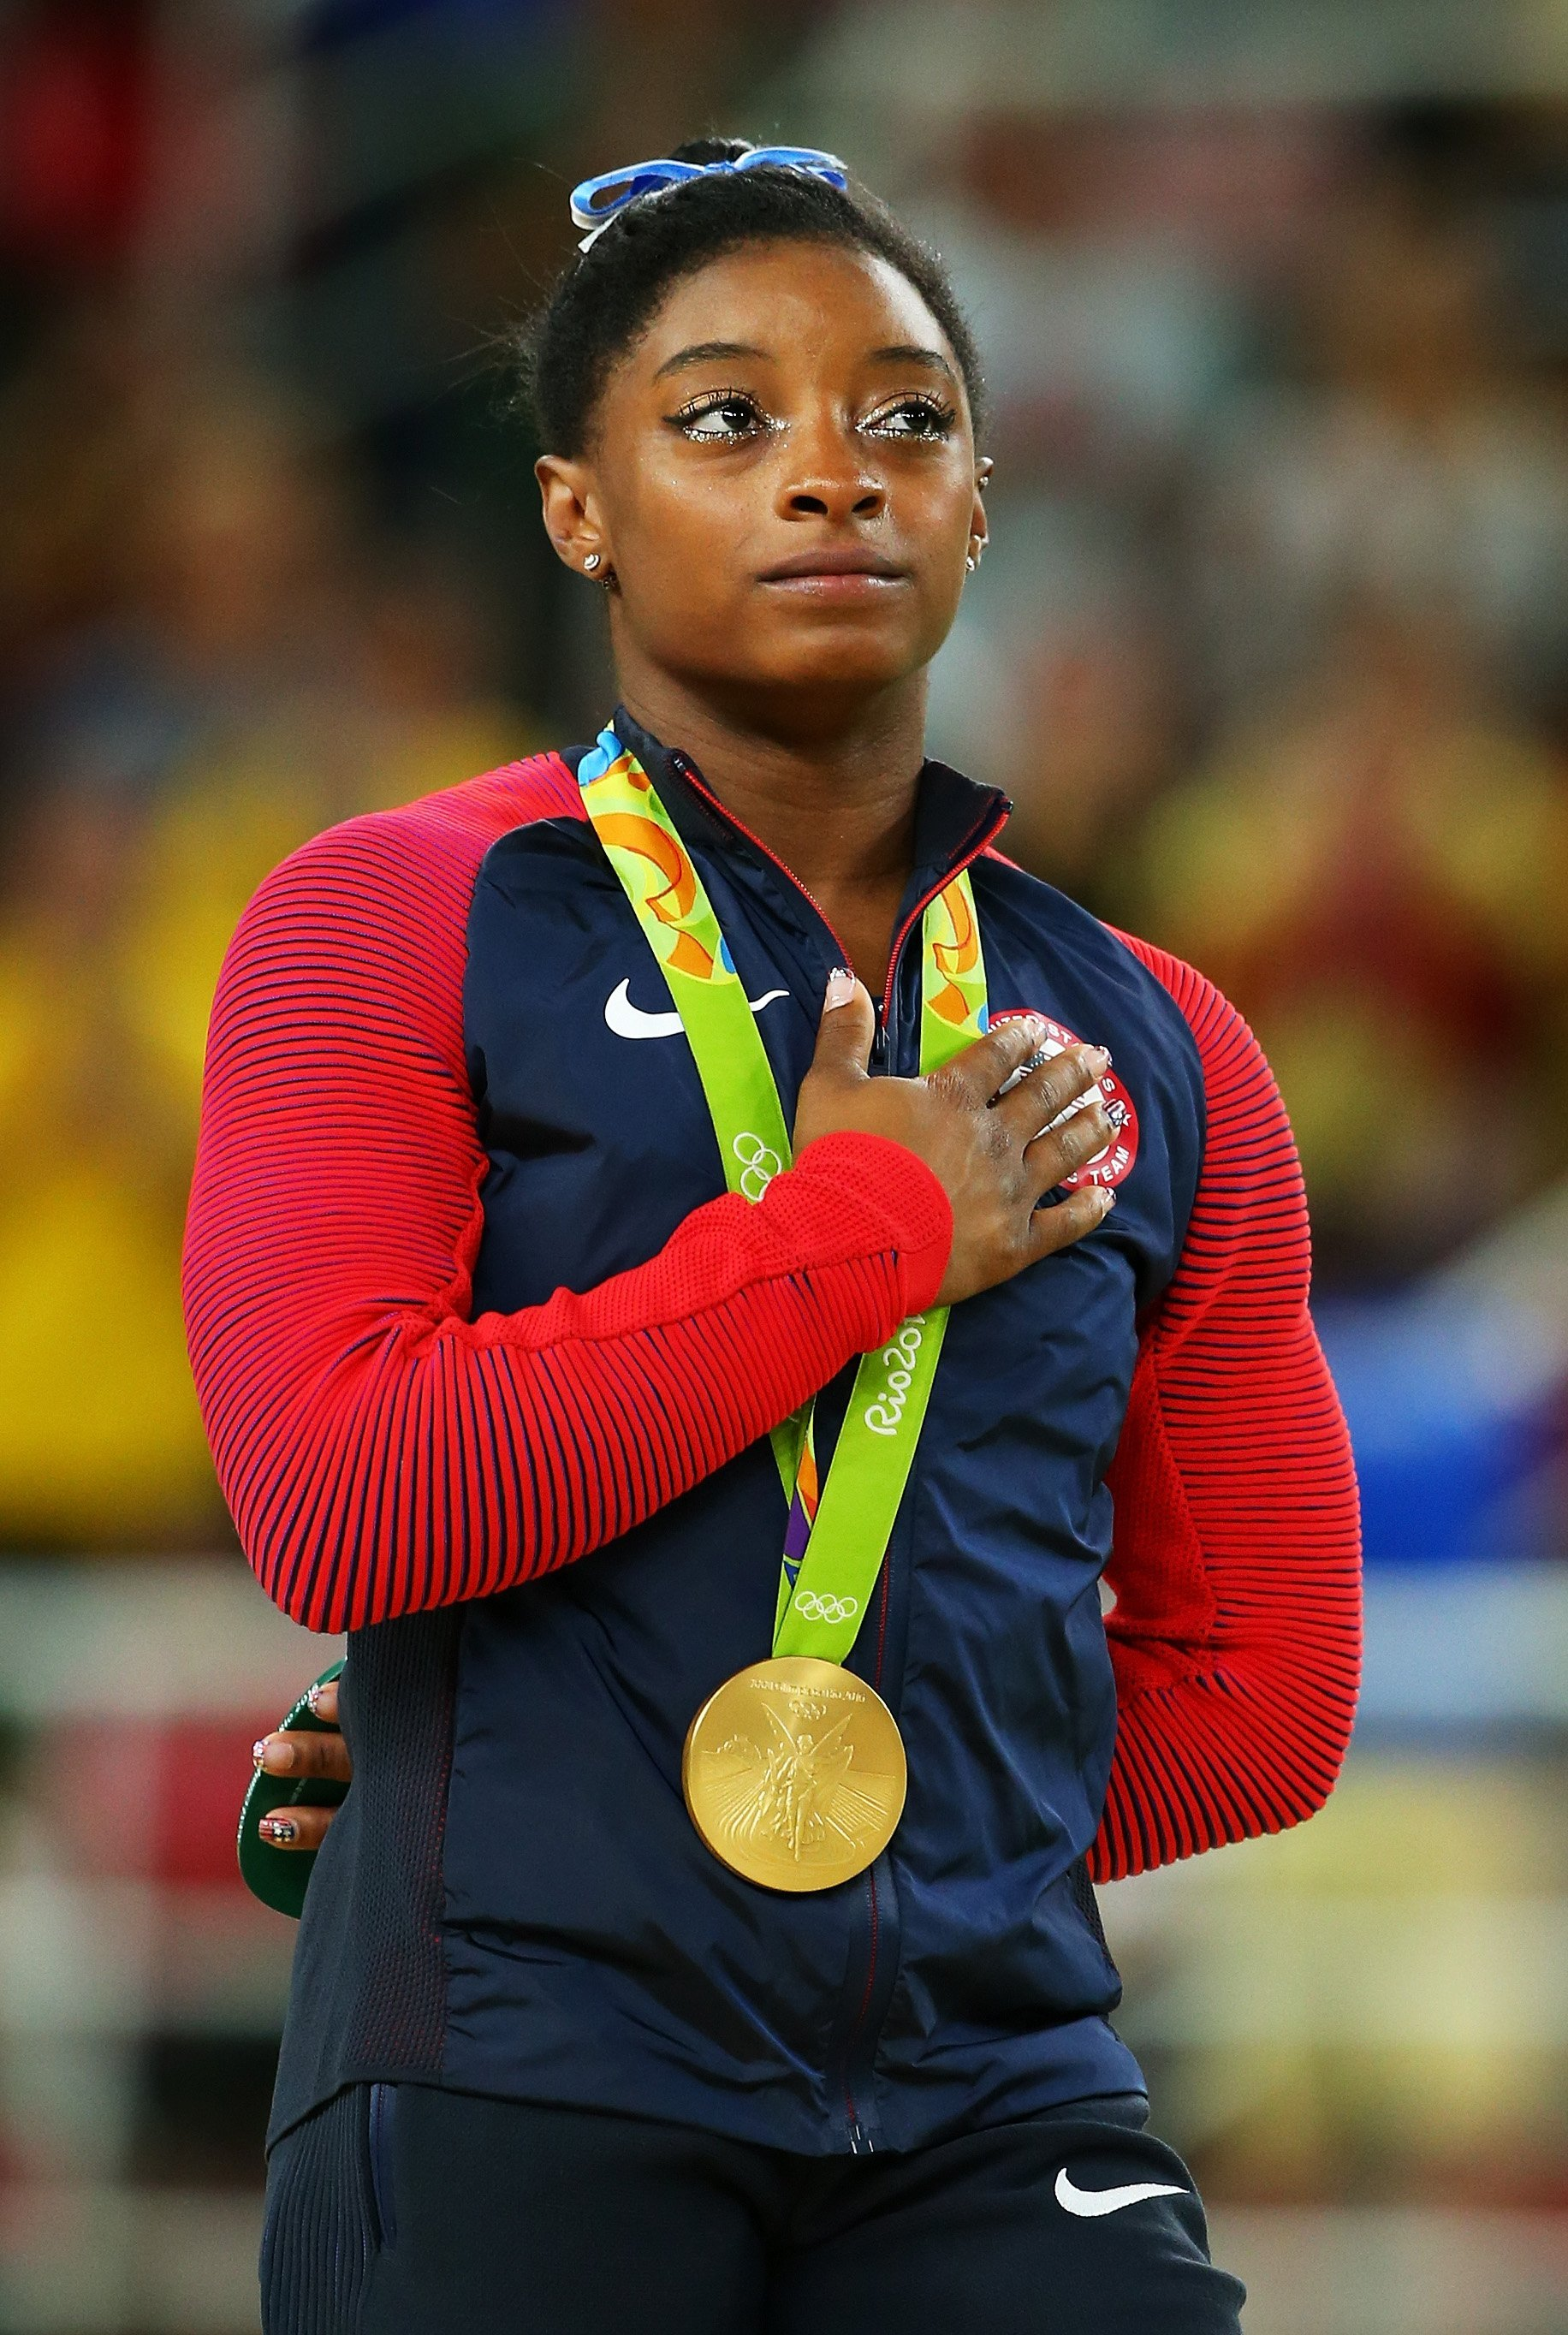 Simone Biles of the United States celebrates on the podium on Day 6 of the 2016 Rio Olympics. | Source: Getty Images